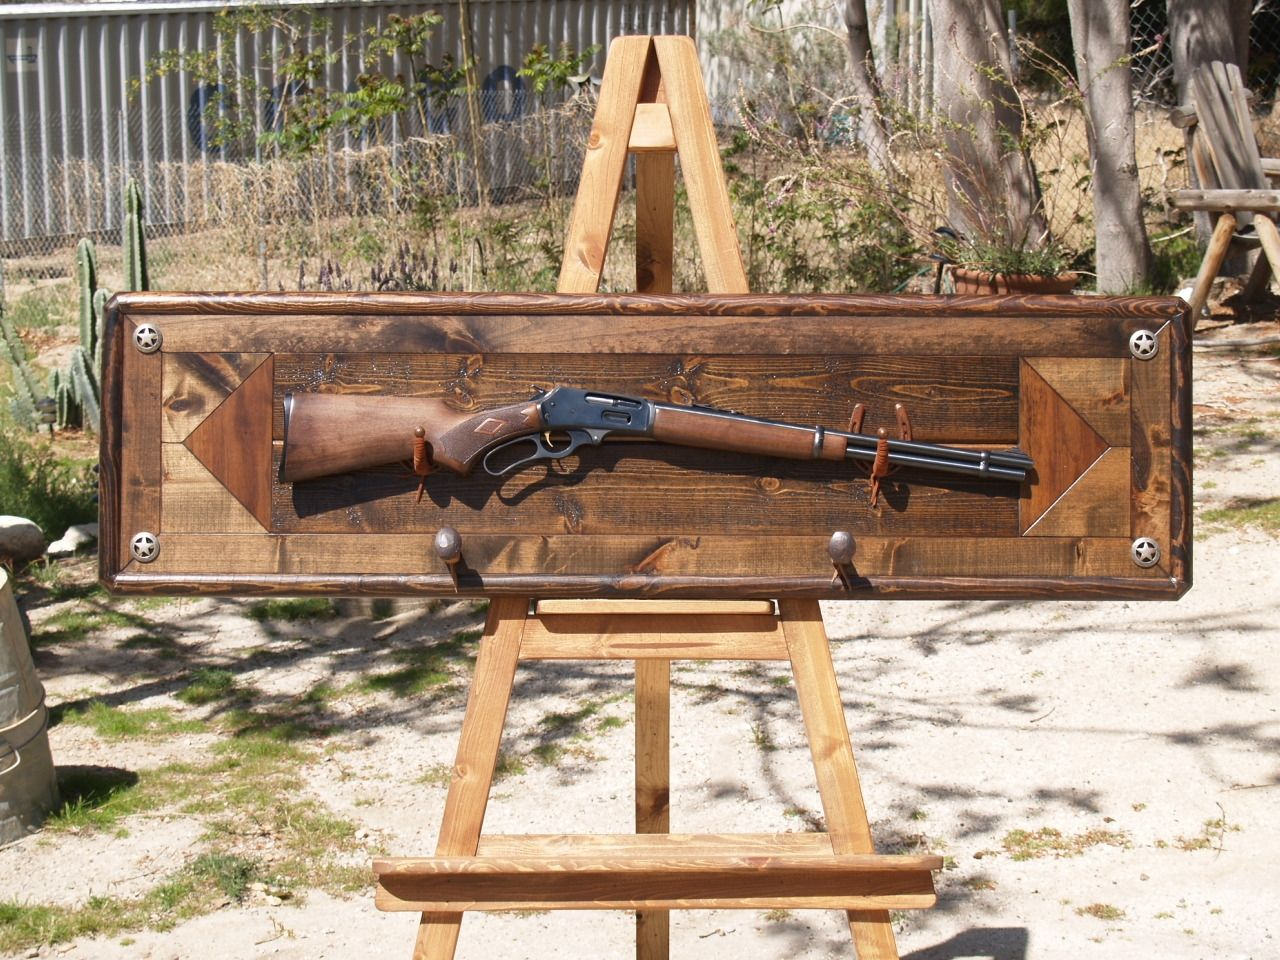 How To Build A Gun Rack At Home